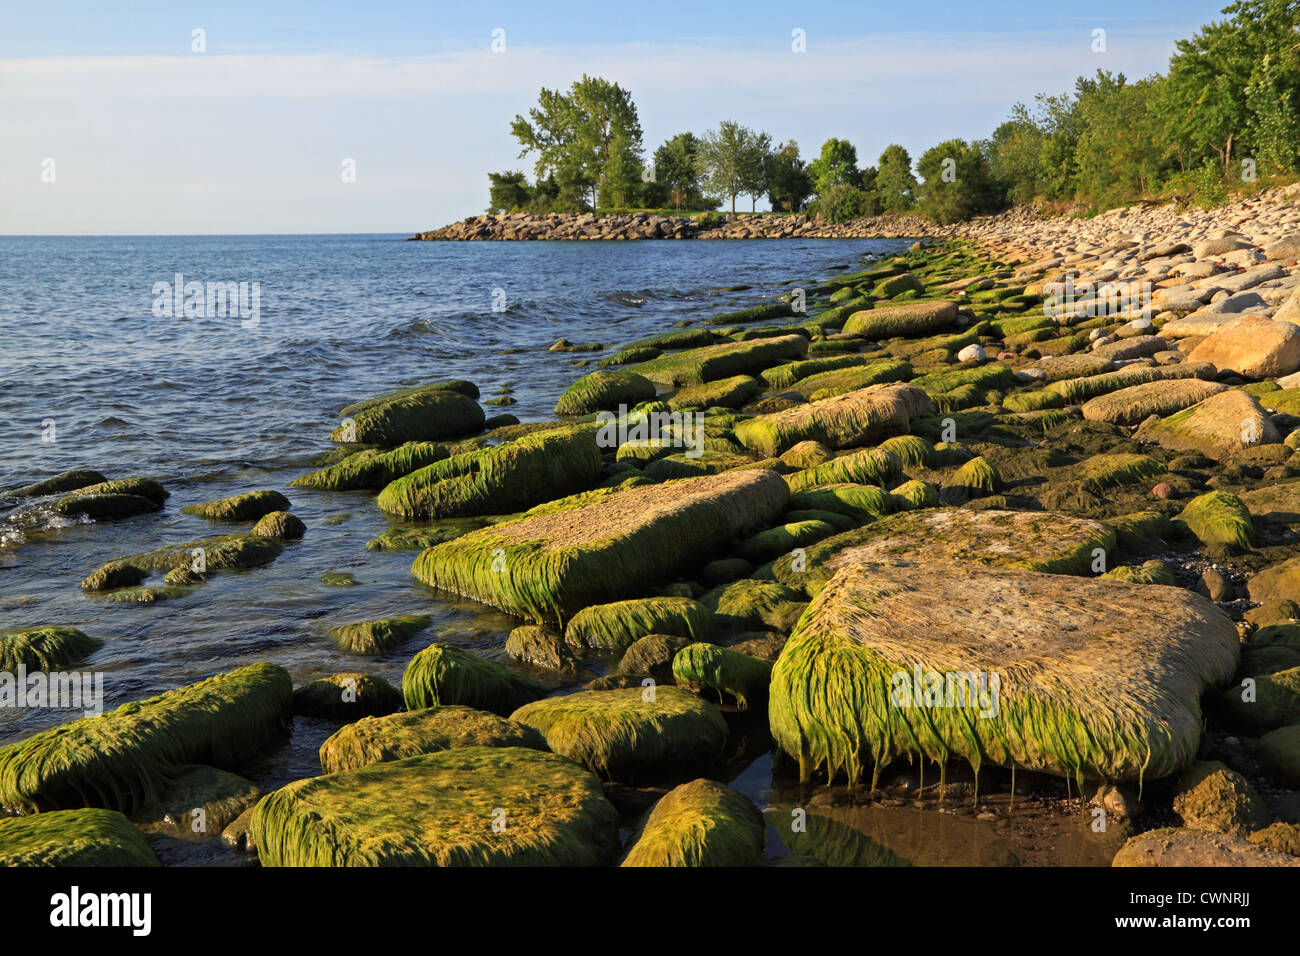 Lake Ontario with green algae on landfill concrete blocks with low water level due to lack of rain and hot weather - Stock Image